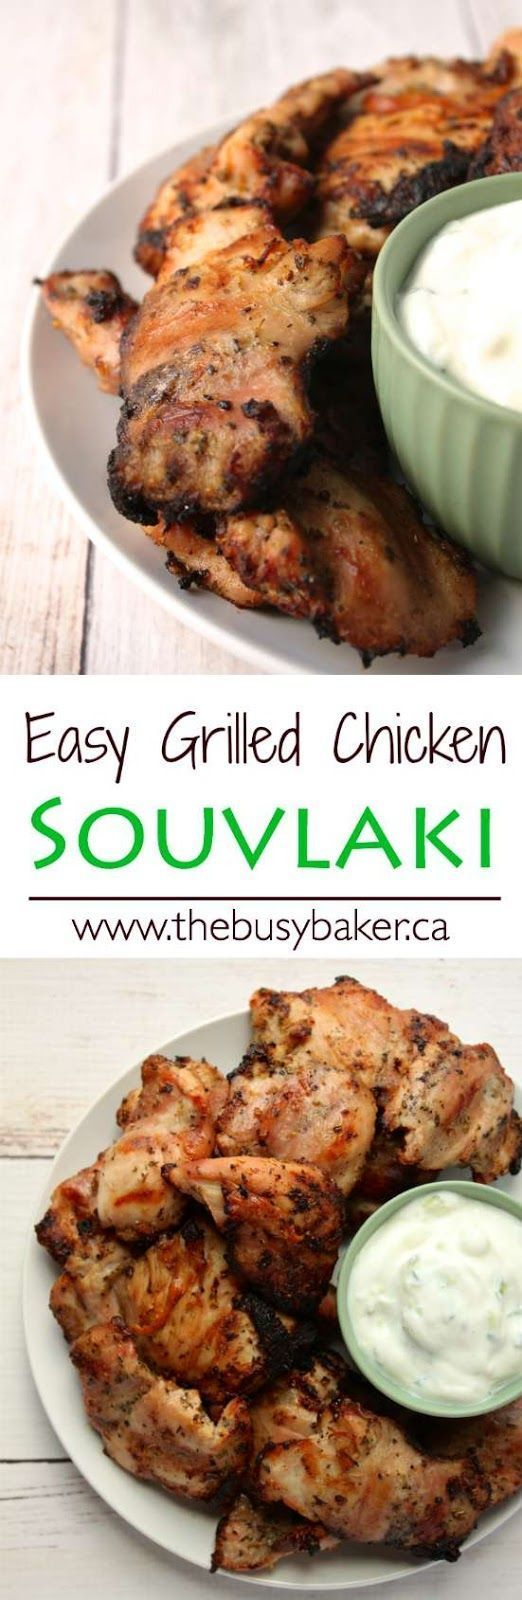 This Easy Grilled Chicken Souvlaki from thebusybaker.ca makes a delicious Valentine's Day meal!